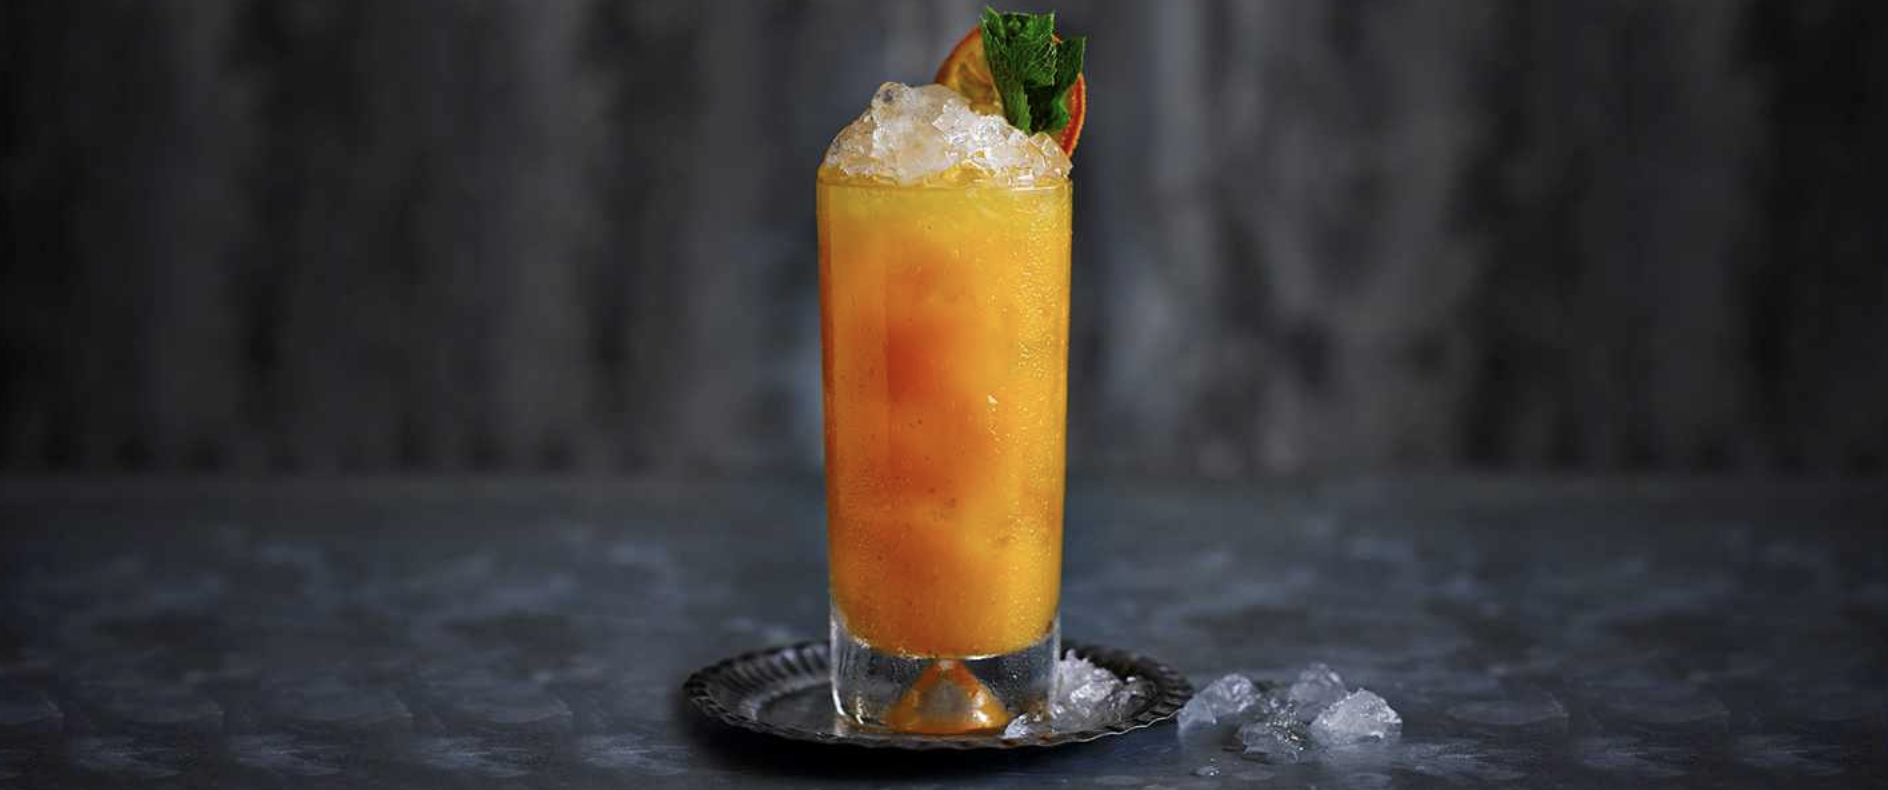 Welcome back to Blighty cocktail with pumpkin and spiced rum